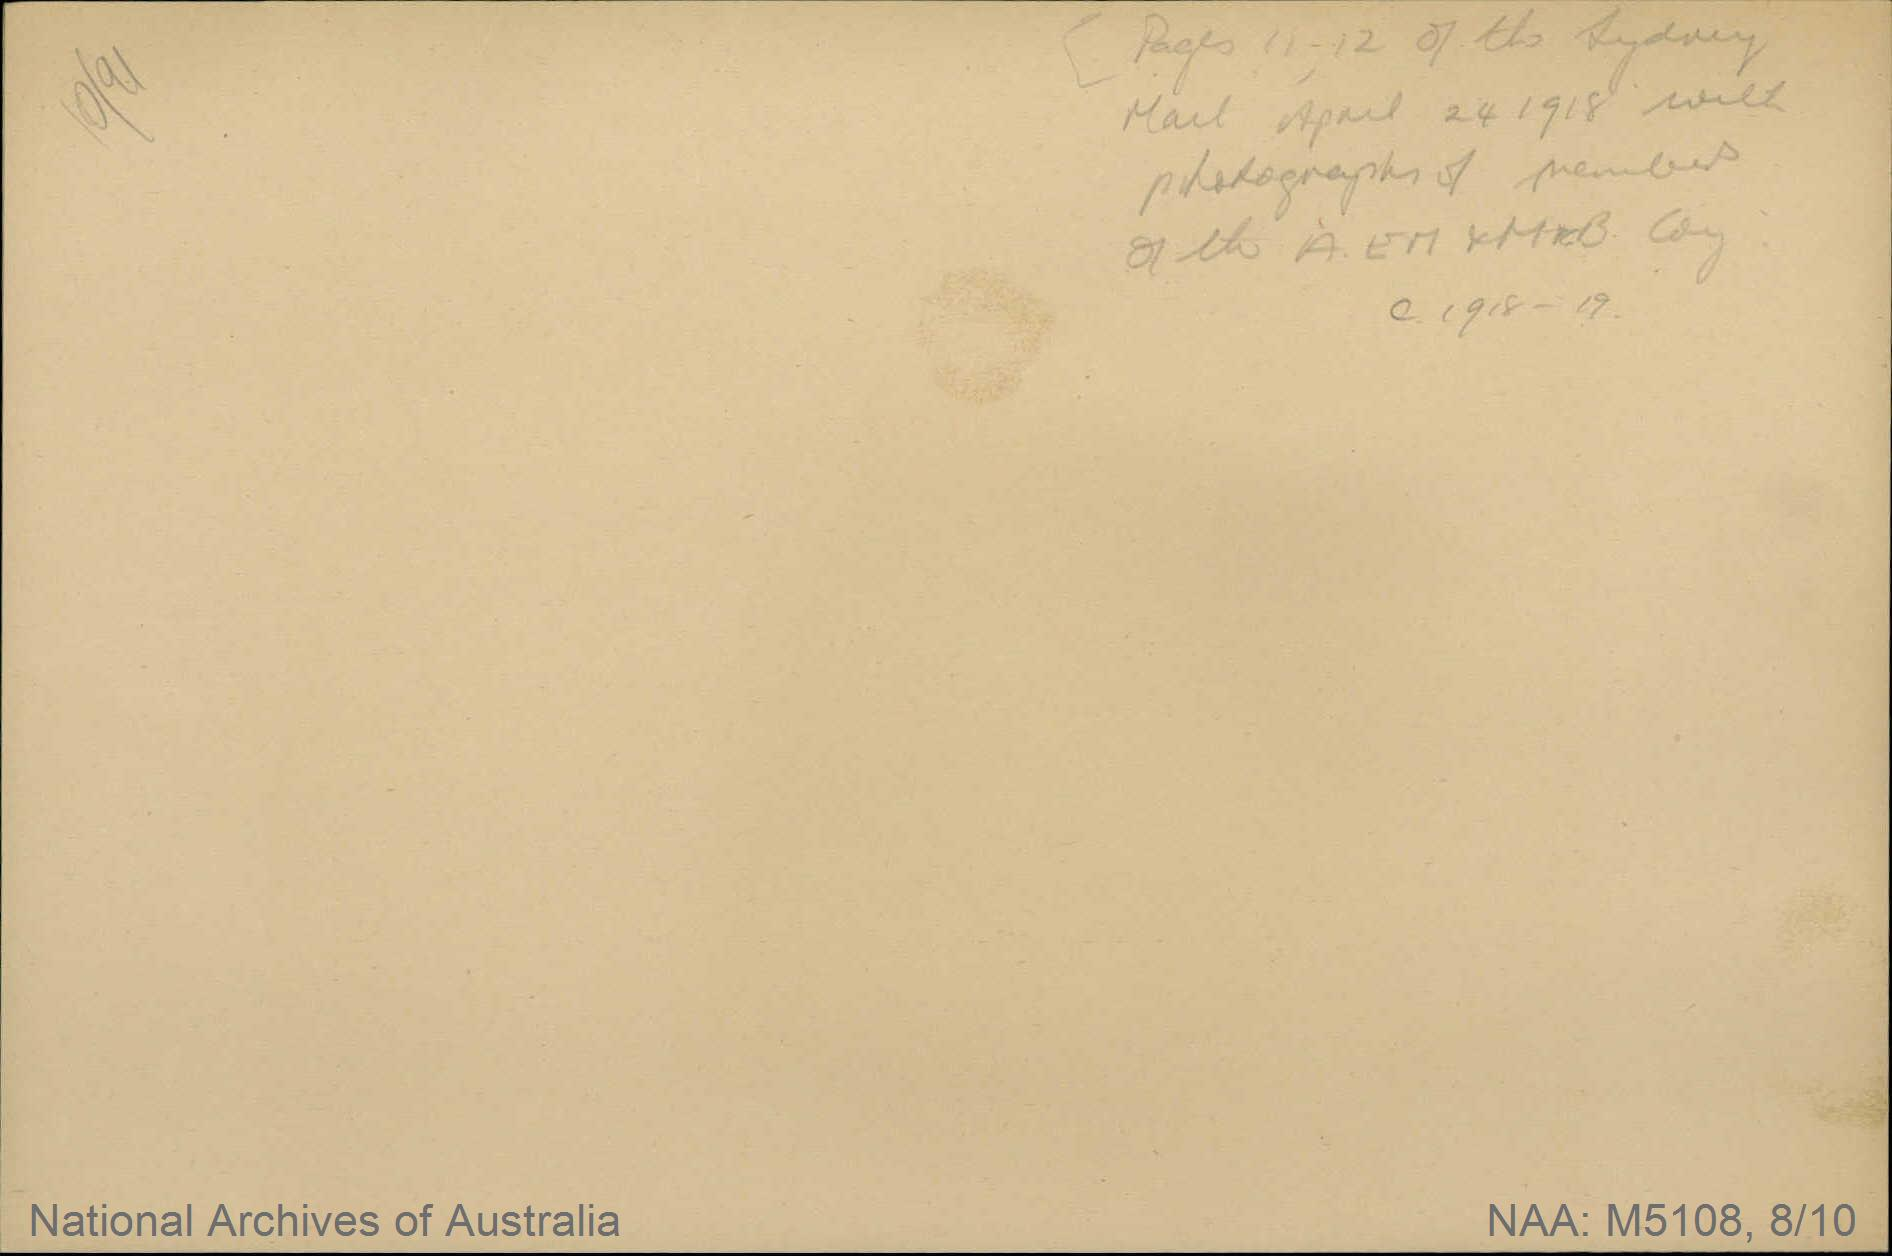 Records of Major Richard Victor Morse DSO (Distinguished Service Order) - page from The Sydney Mail, 'In the Ypres Salient: Fall of Bailleul', including photographs of members of the Australian Electrical and Mechanical Mining and Boring Company and other Australian miners and borers - pp 11-12